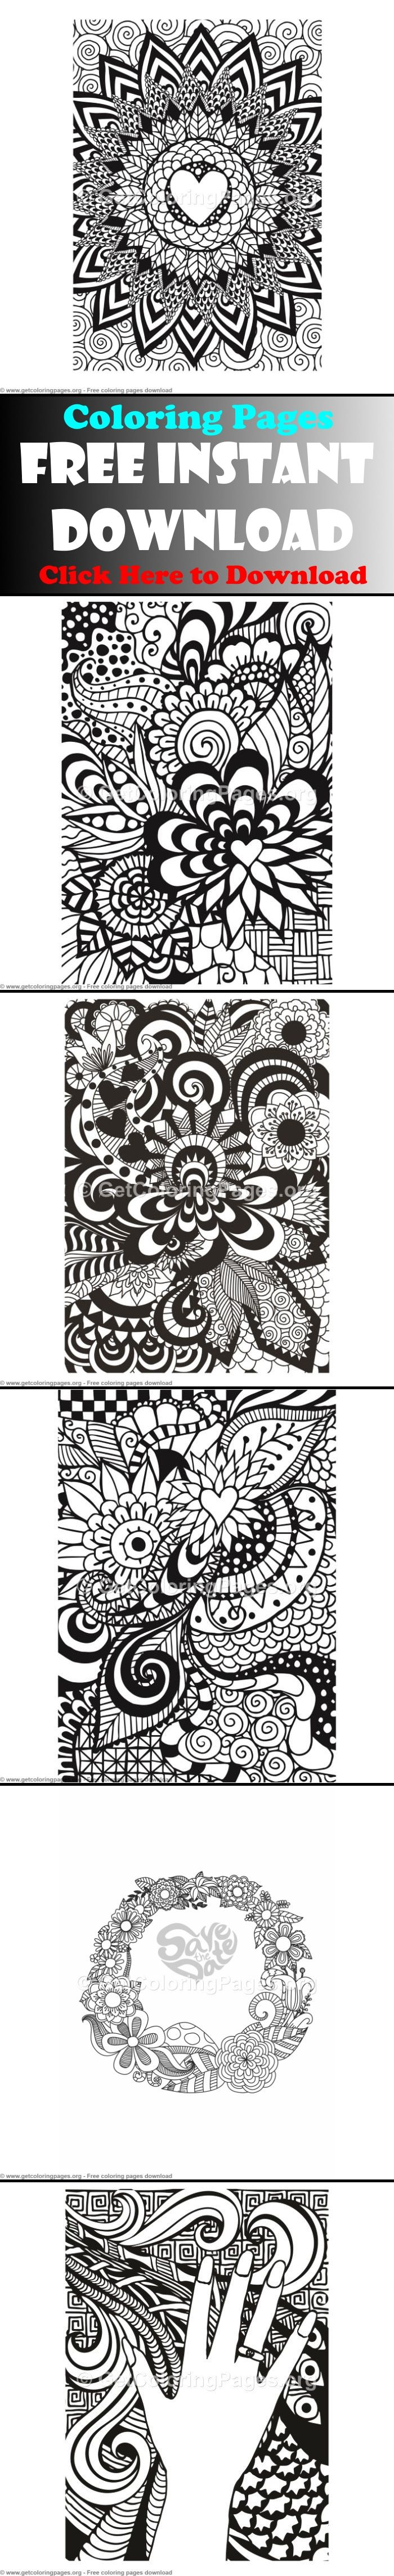 Free doodling coloring pages Adult Coloring Pages Pinterest